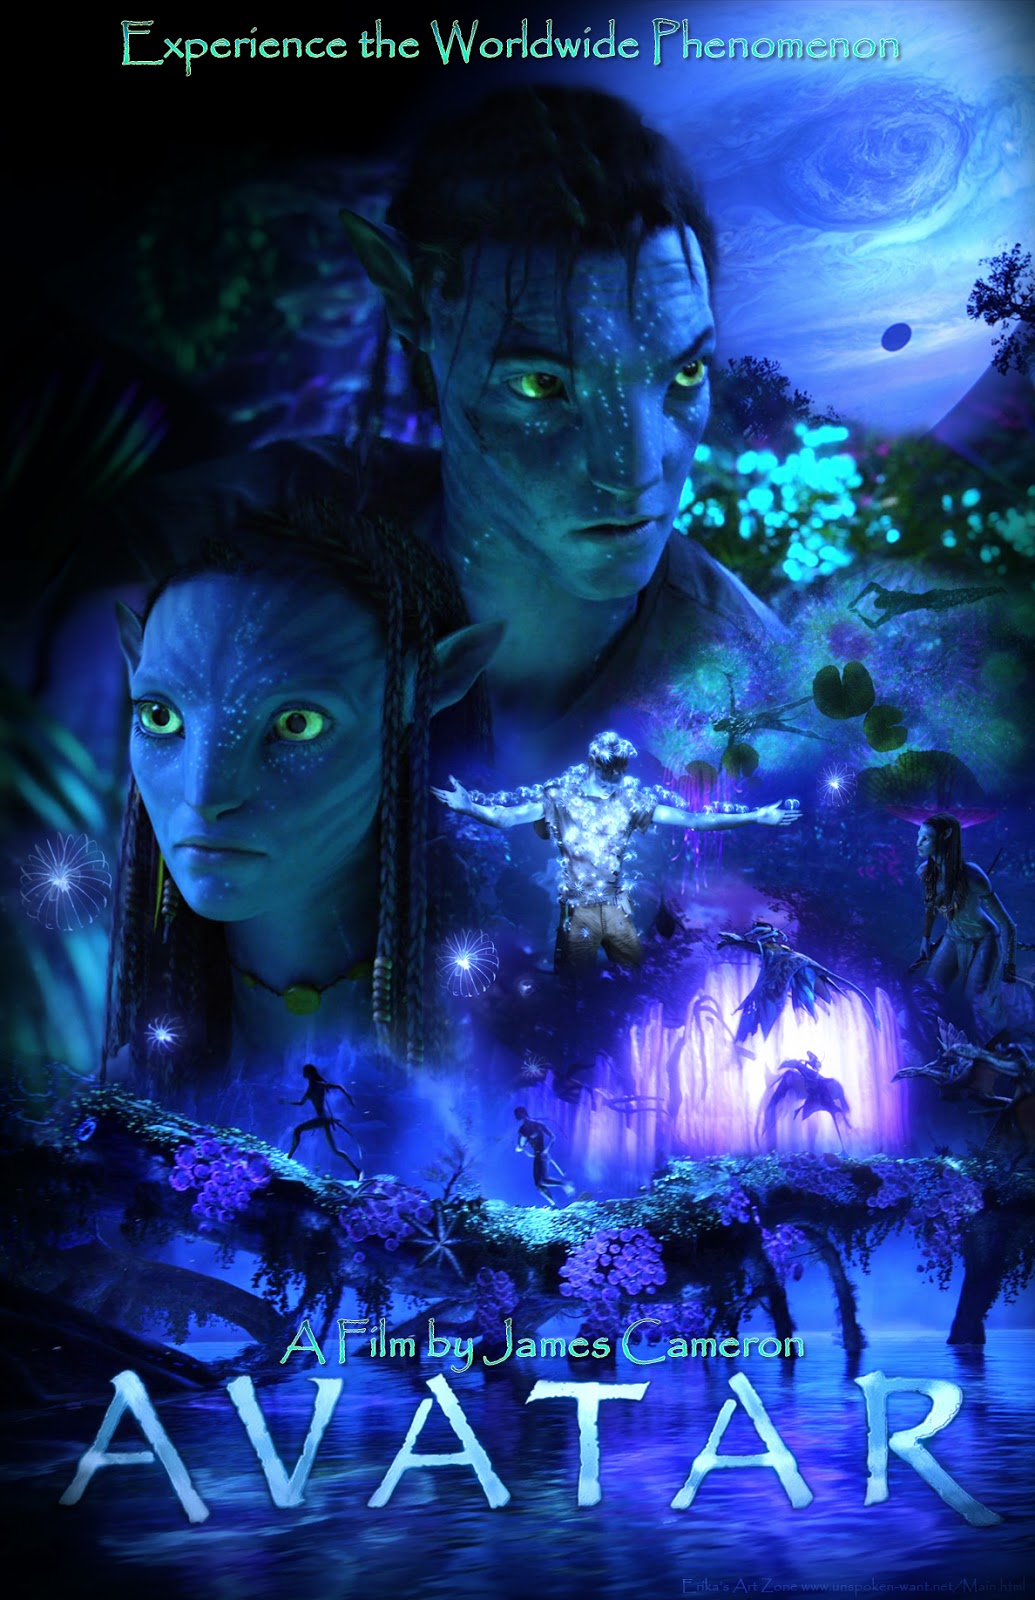 avatar hollywood movie download in hindi full hd